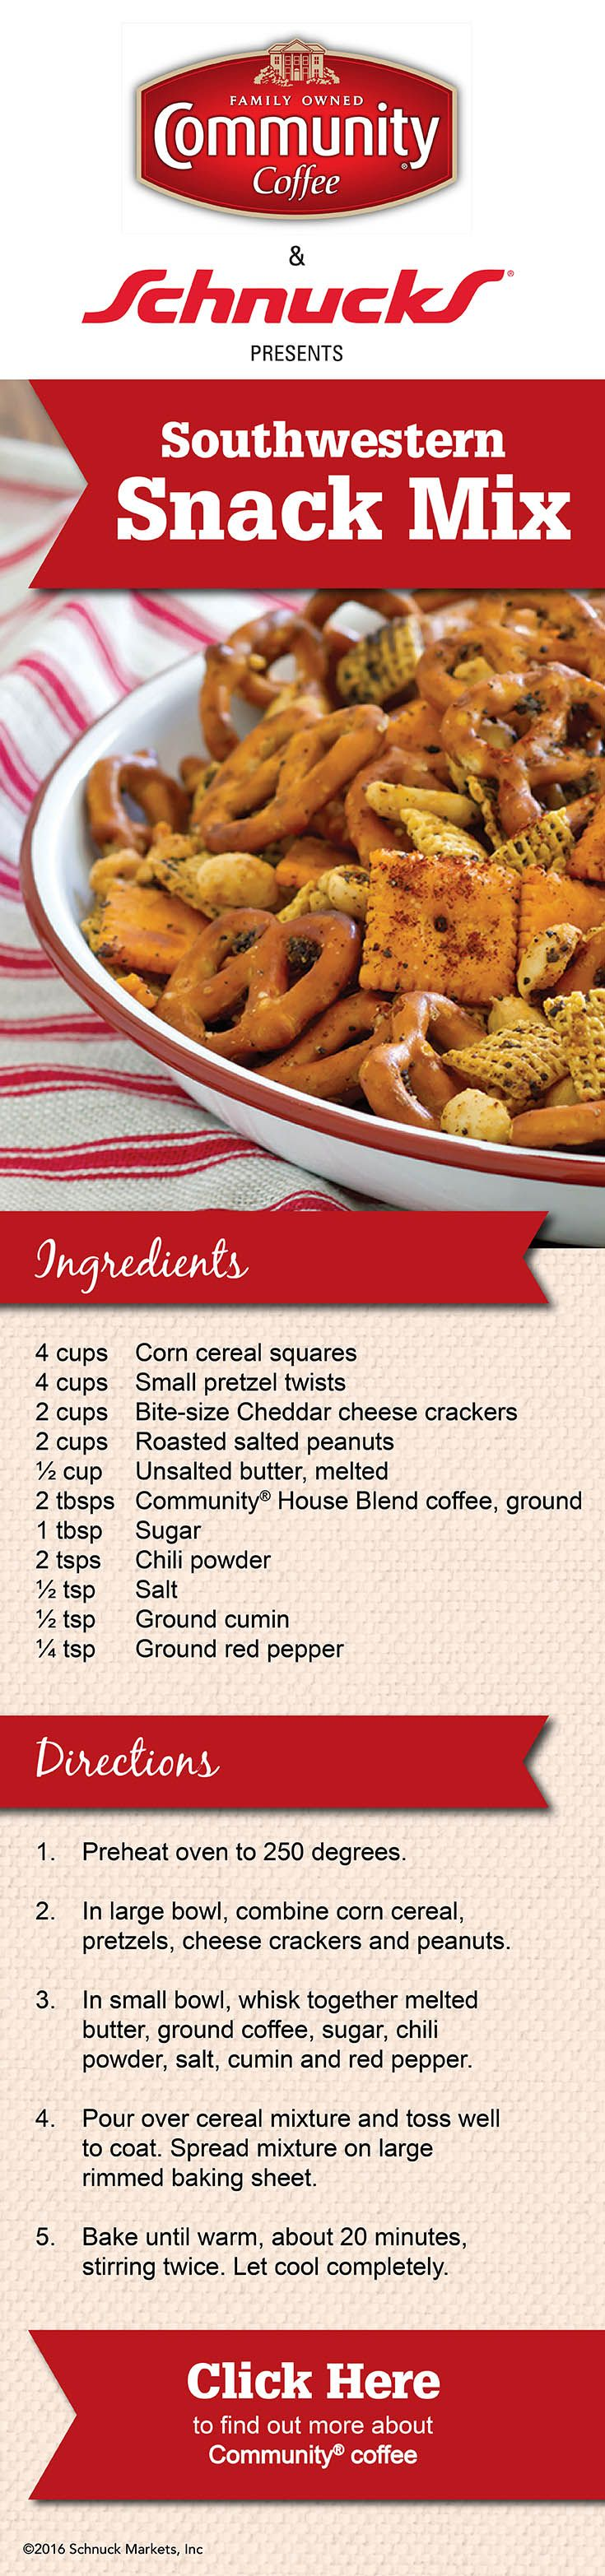 Looking for tasty snack? This Southwestern Snack Mix is just what you need! 1: Preheat oven to 250 degrees. 2: Combine corn cereal, pretzels, cheese crackers and peanuts. 3: Whisk together melted butter, ground coffee, sugar, chili powder, salt, cumin and red pepper. 4: pour over cereal mixture and toss well to coat. Spread on baking sheet. 5: Bake 20 minutes, stirring twice. Let cool.